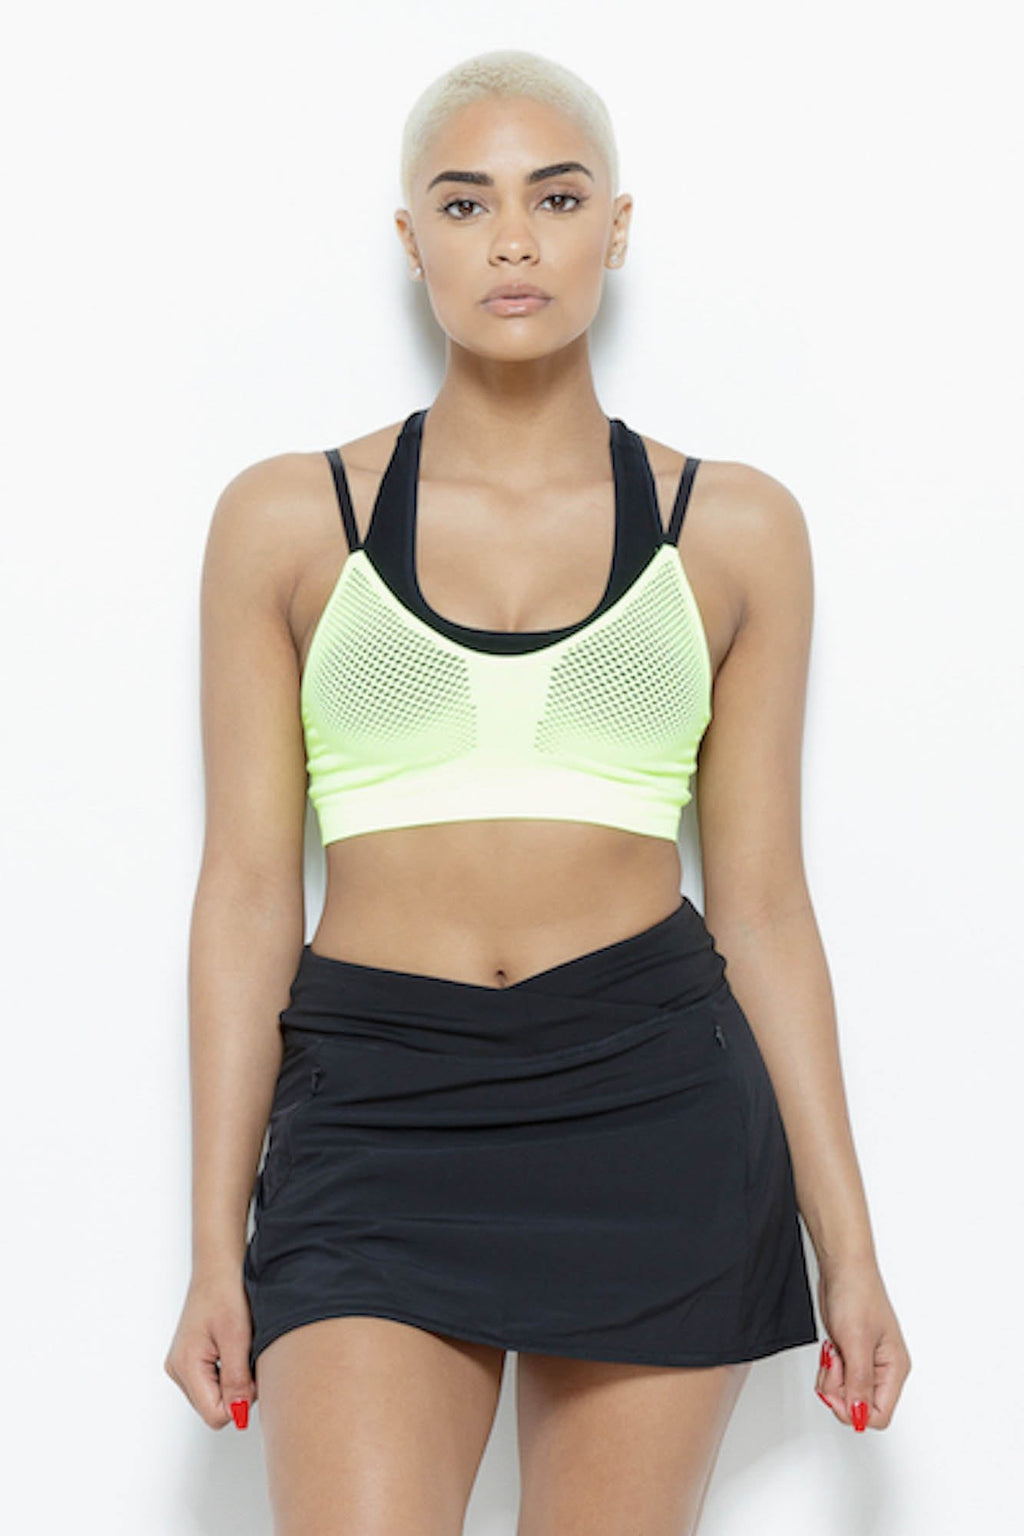 Karma Sports Bra- Acidic Clothing MPG SM Acidic 68% Nylon 20% Polyester 12% Spadex